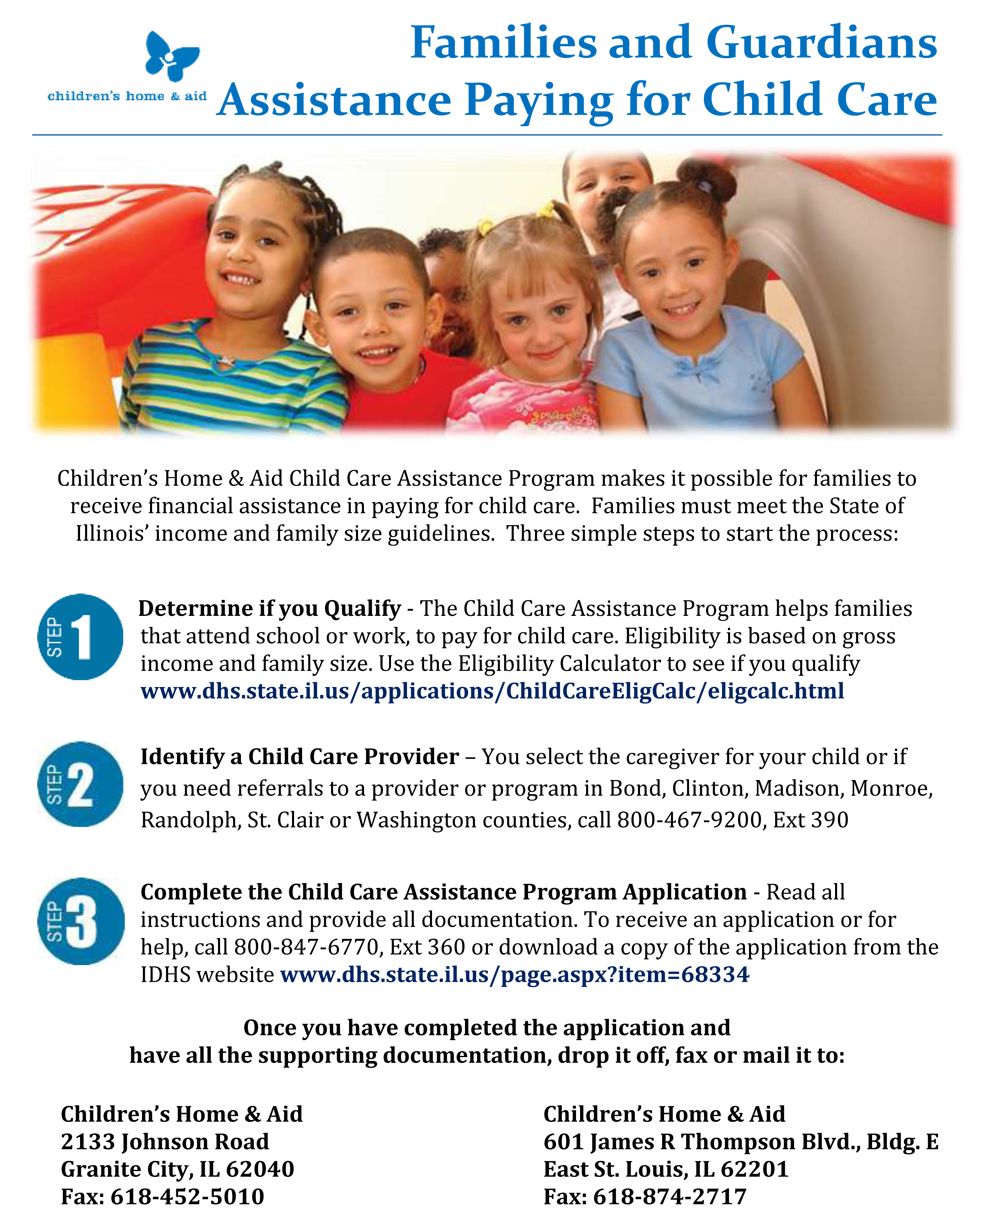 Families & Guardians Assistance Paying for Child Care